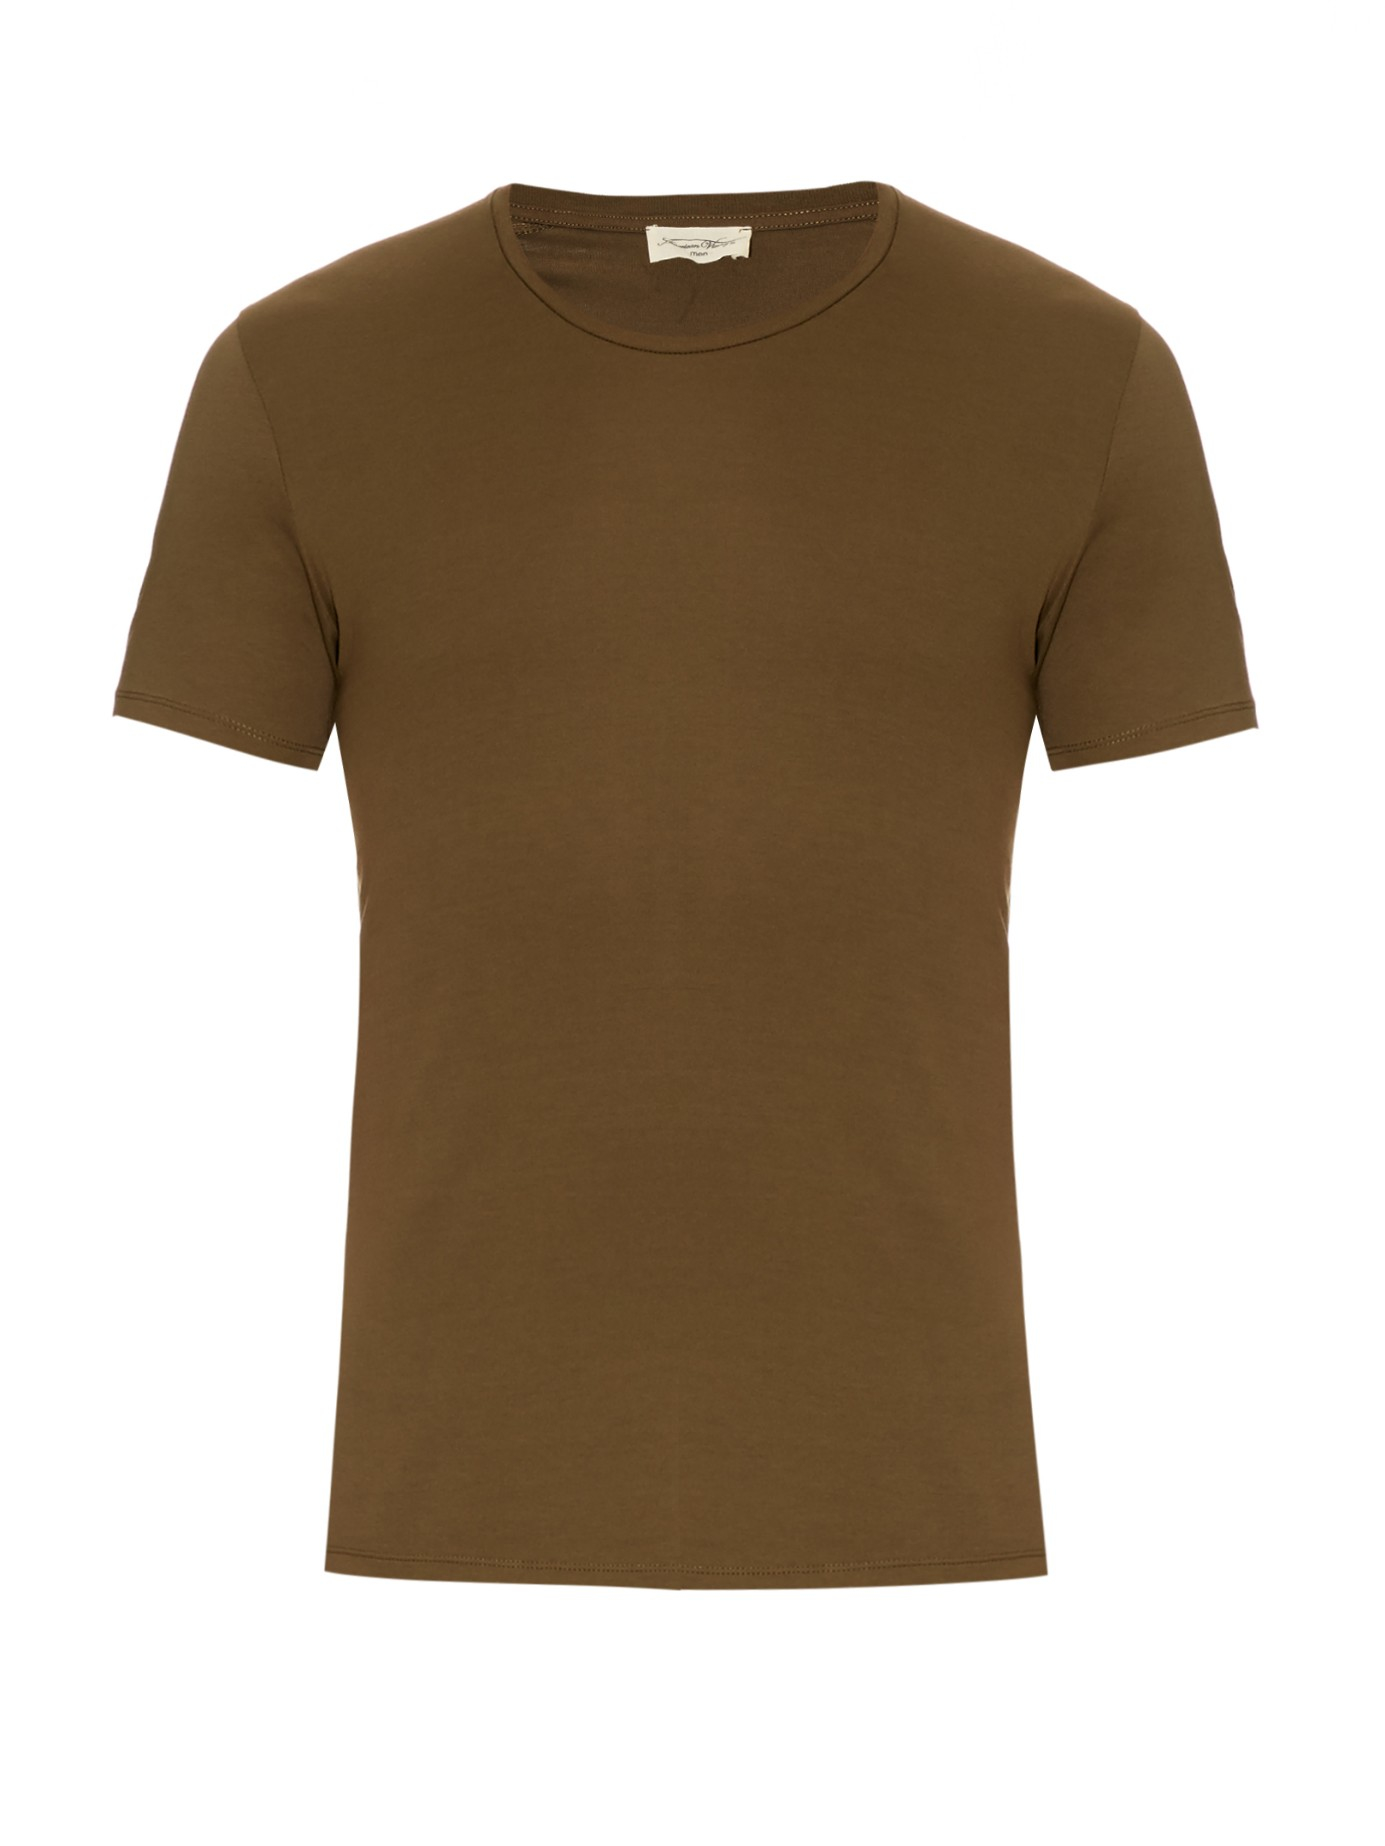 American Vintage Crew Neck Cotton T Shirt In Natural For